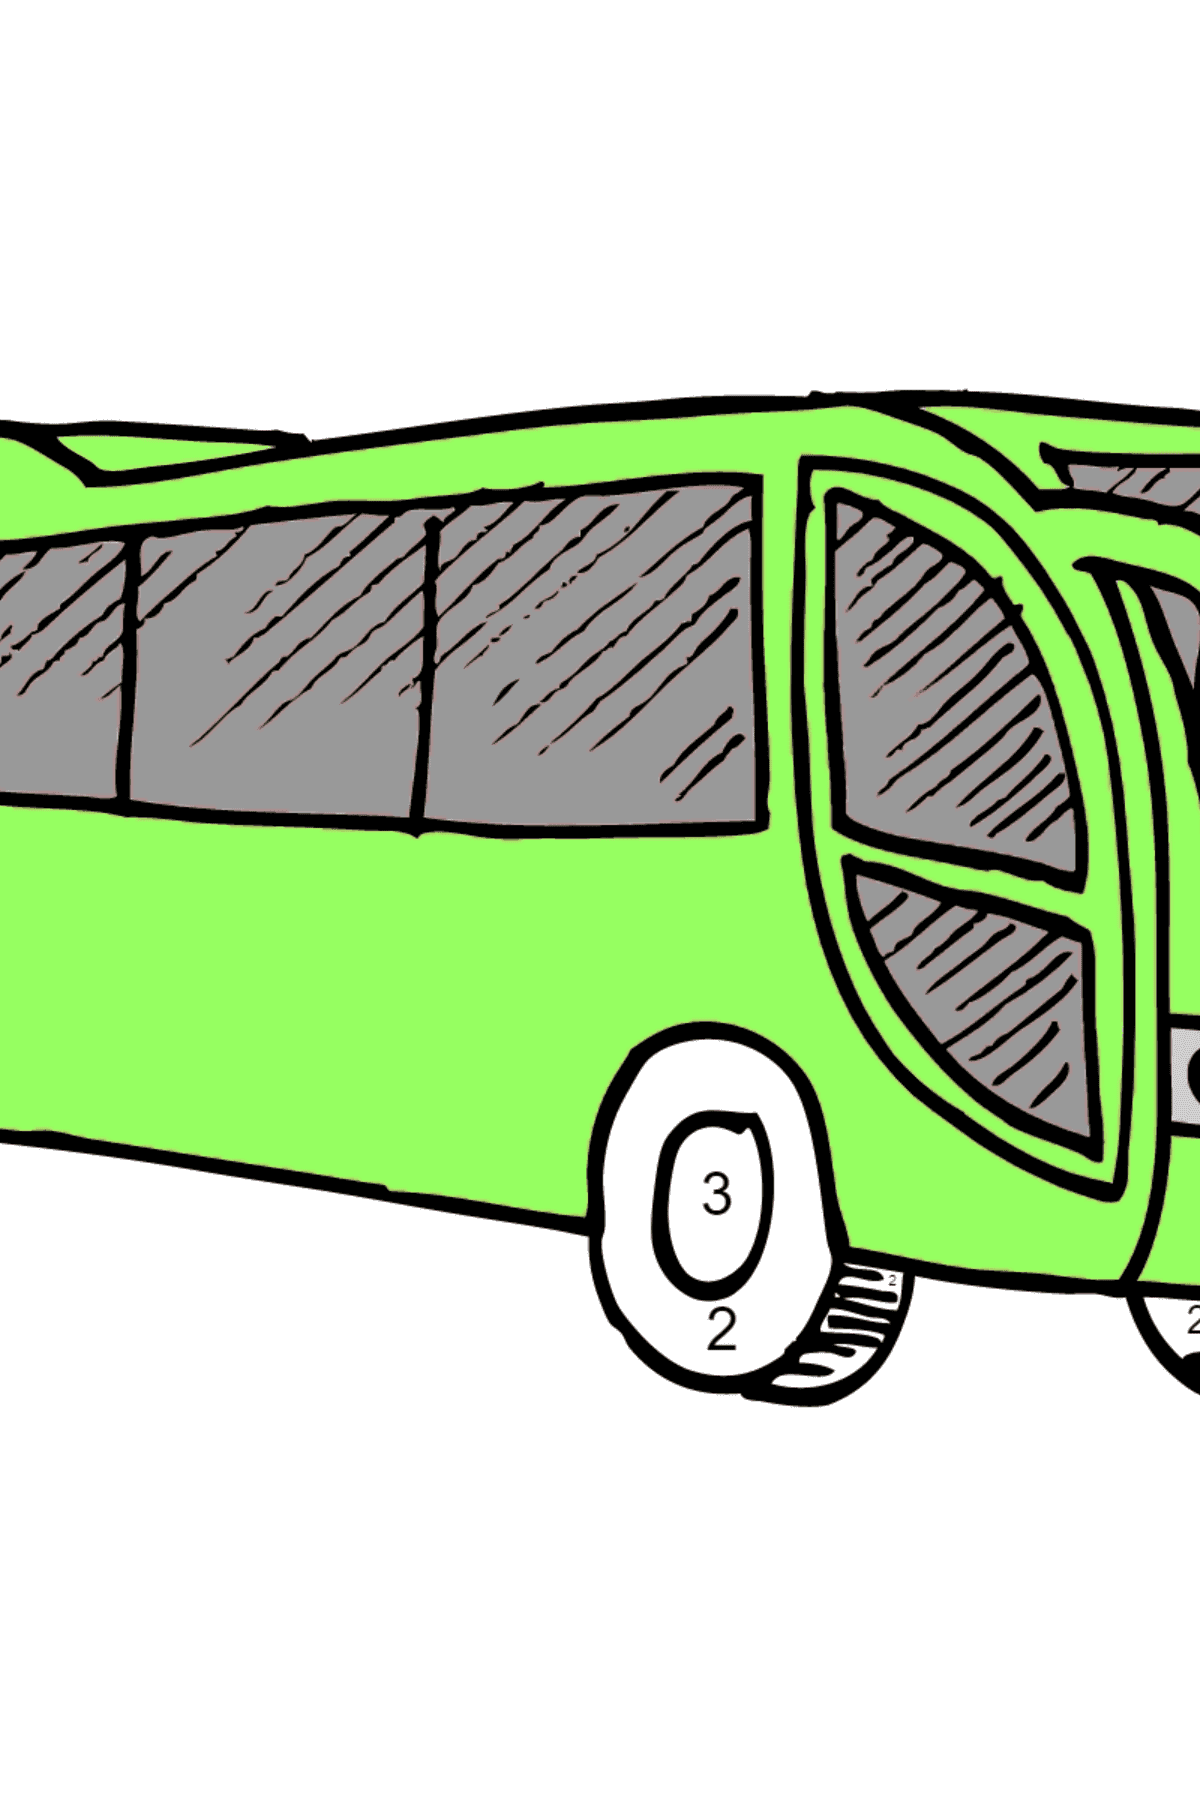 Coloring Page - A Bus is Having Rest - Coloring by Numbers for Kids